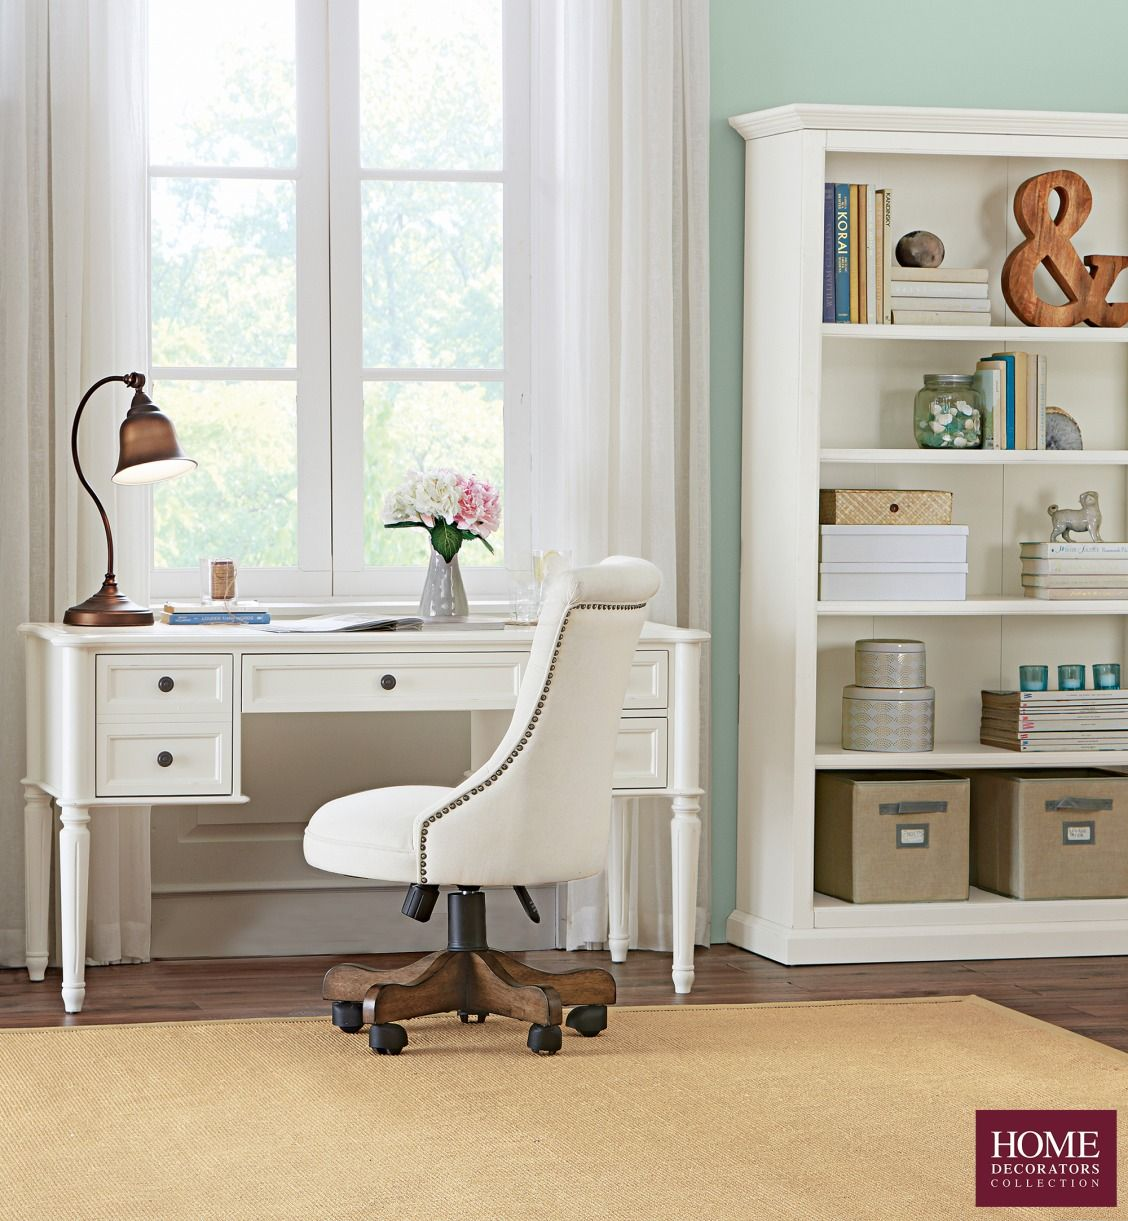 Delightful Get In A New Frame Of Mind With New Home Office Furniture. The Martha  Stewart